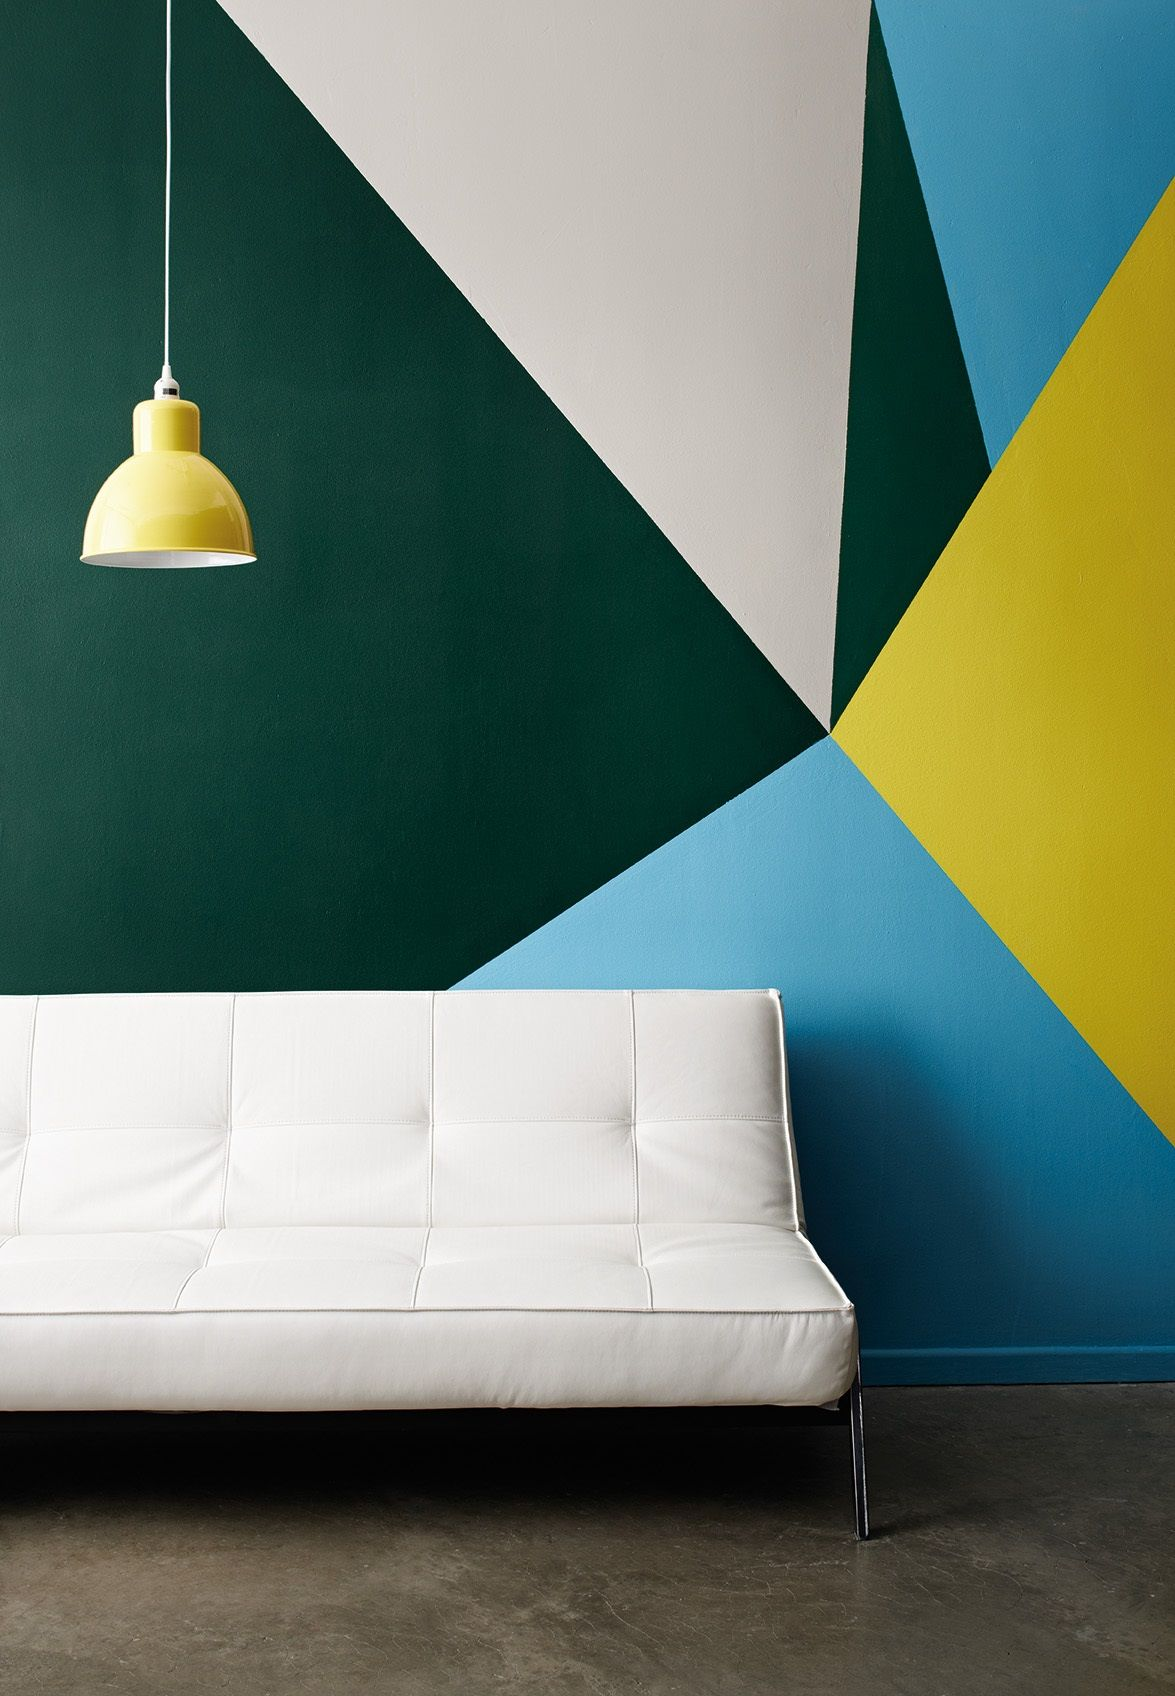 Geometric Wall Paint Designs | It's time to give your walls some happiness. |  Find more Inspiring Home Design Ideas by visiting www.homedesignideas.eu